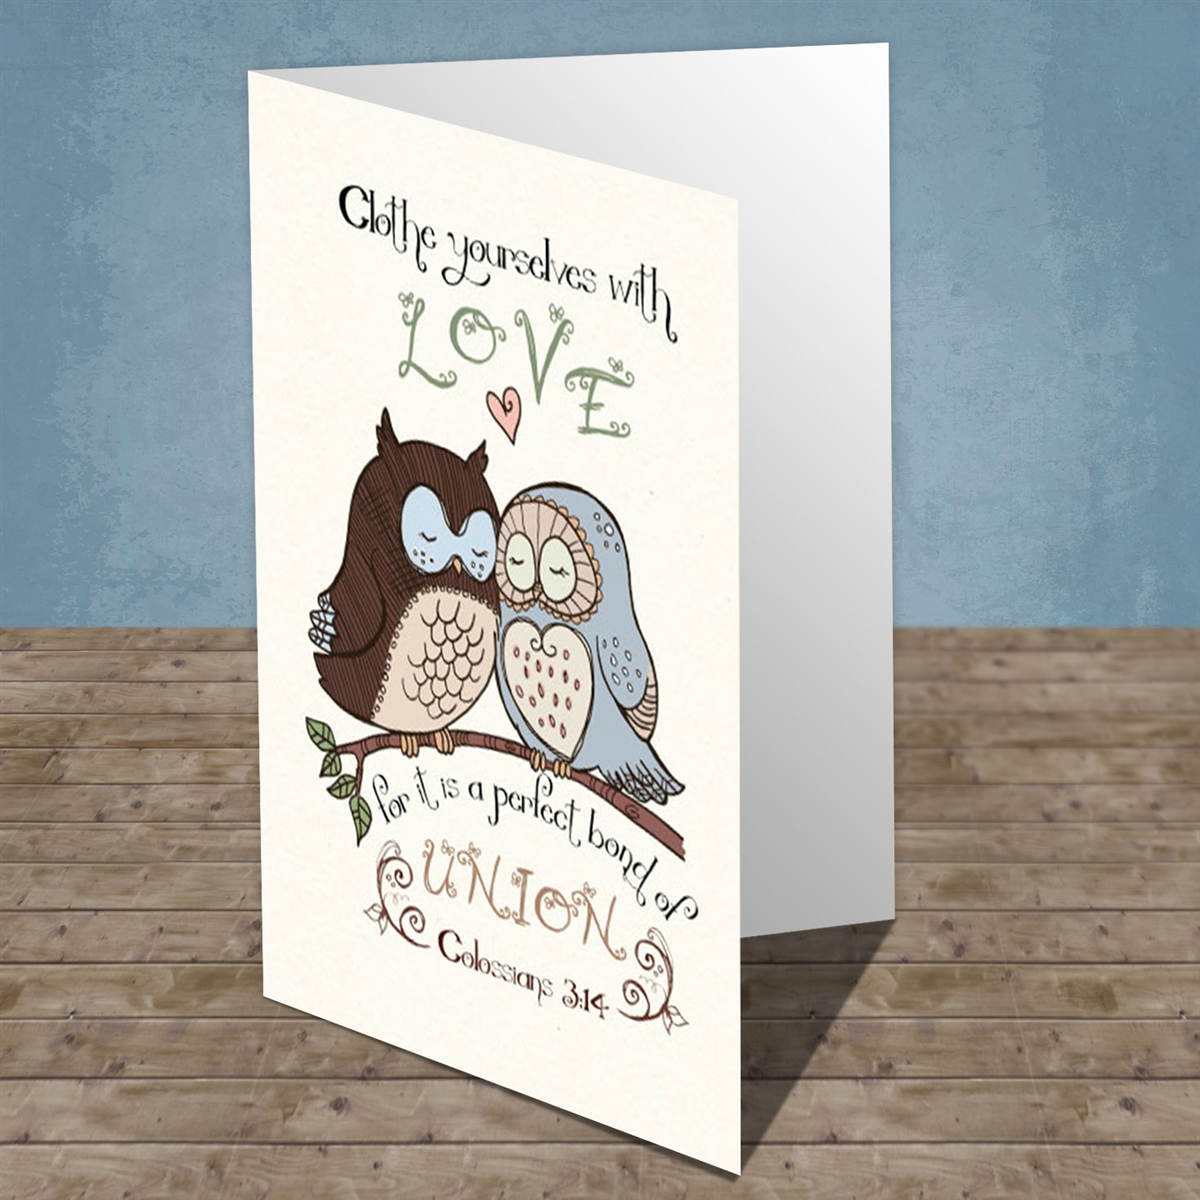 Colossians 314 Greeting Card Wedding Anniversary Card